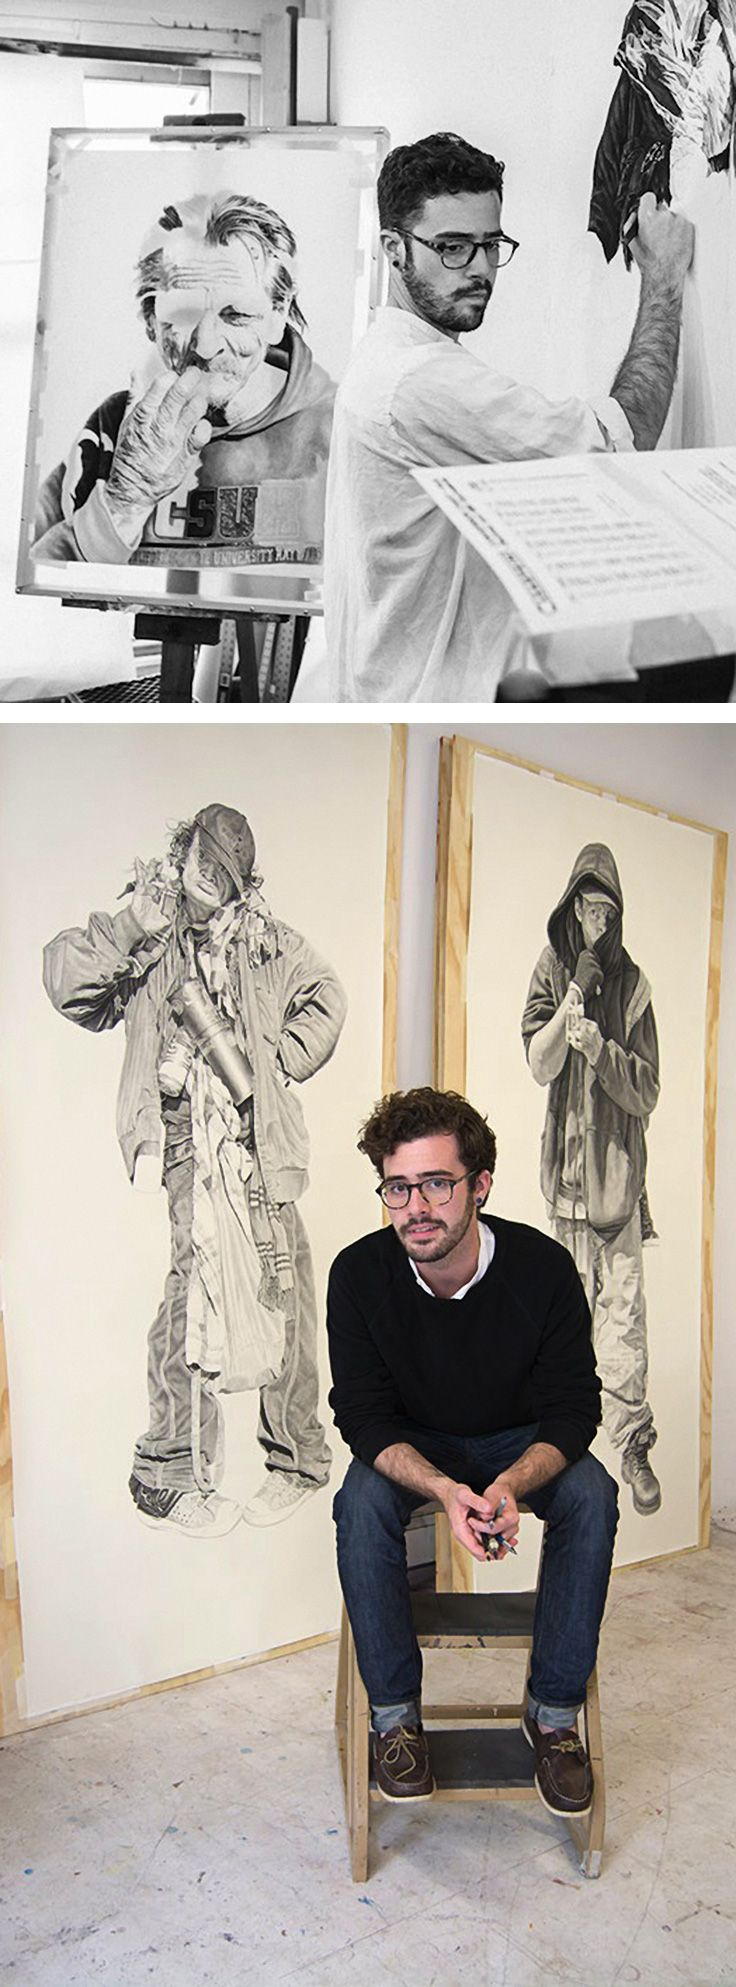 Joel Daniel Phillips, artist seated in his California art studio #workspace with life-sized people, pencil and charcoal drawings. joeldanielphillips.com